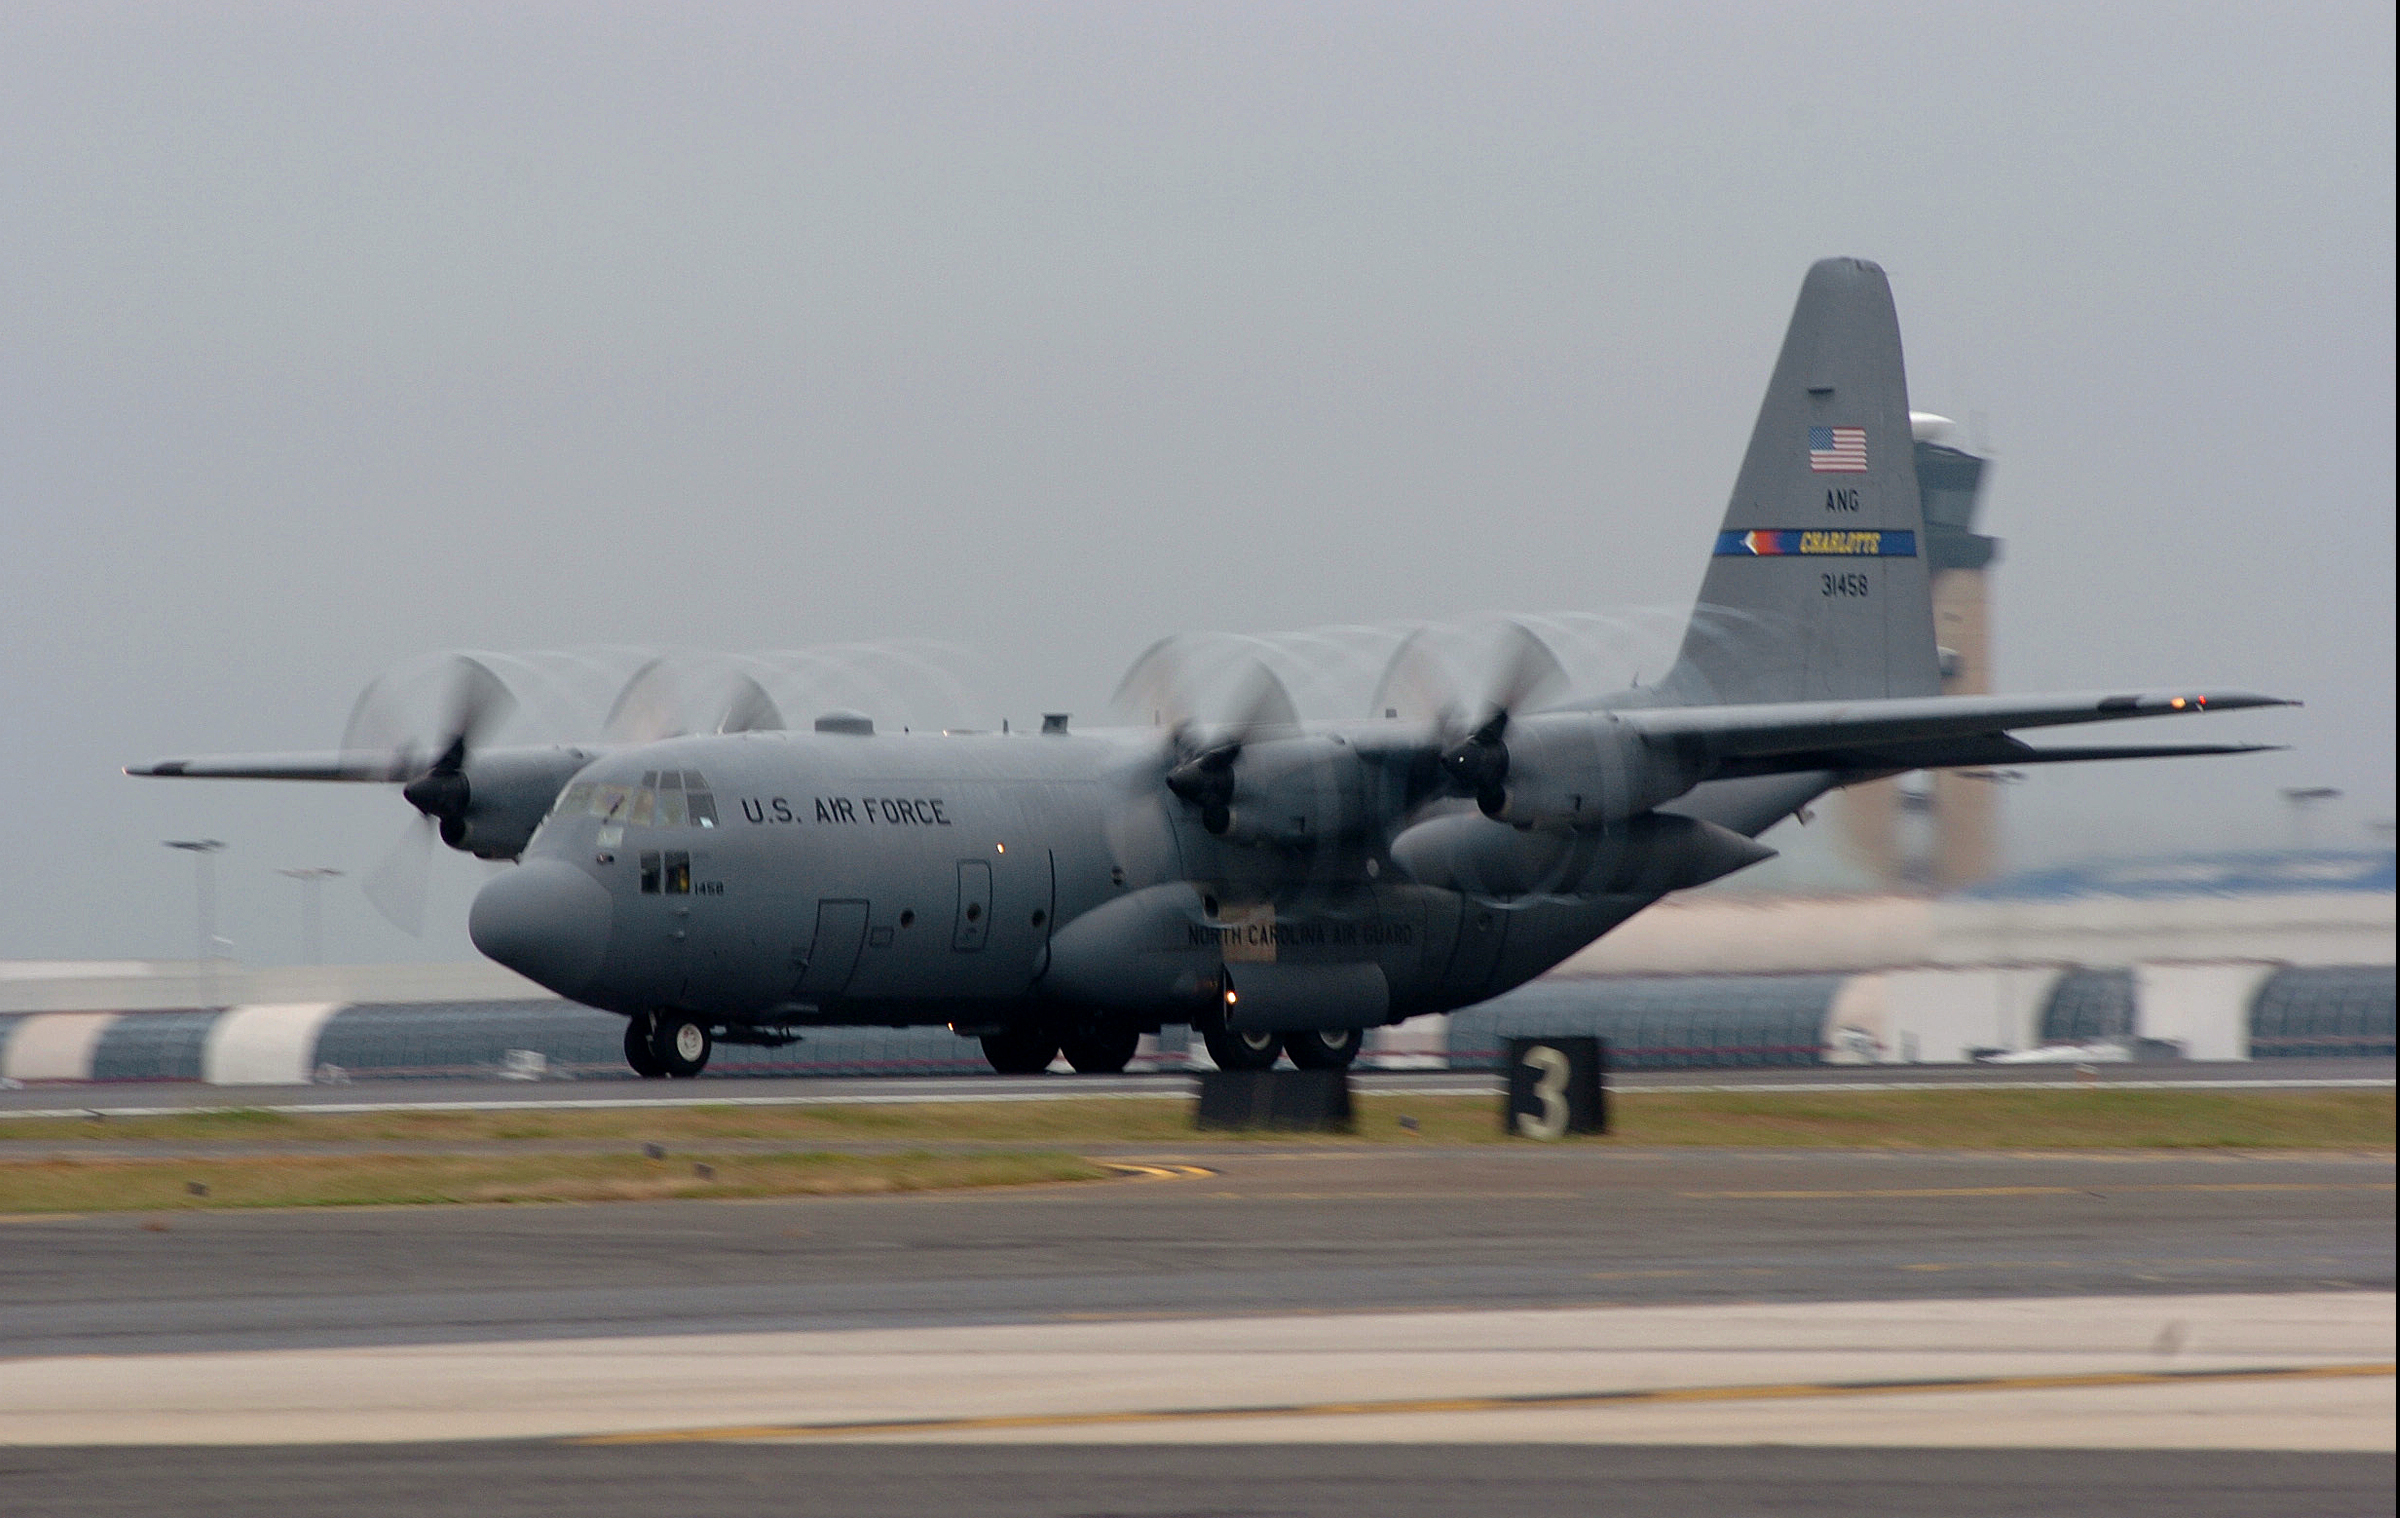 A U S  Air Force C-130 Hercules aircraft from the 145th Airlift Wing